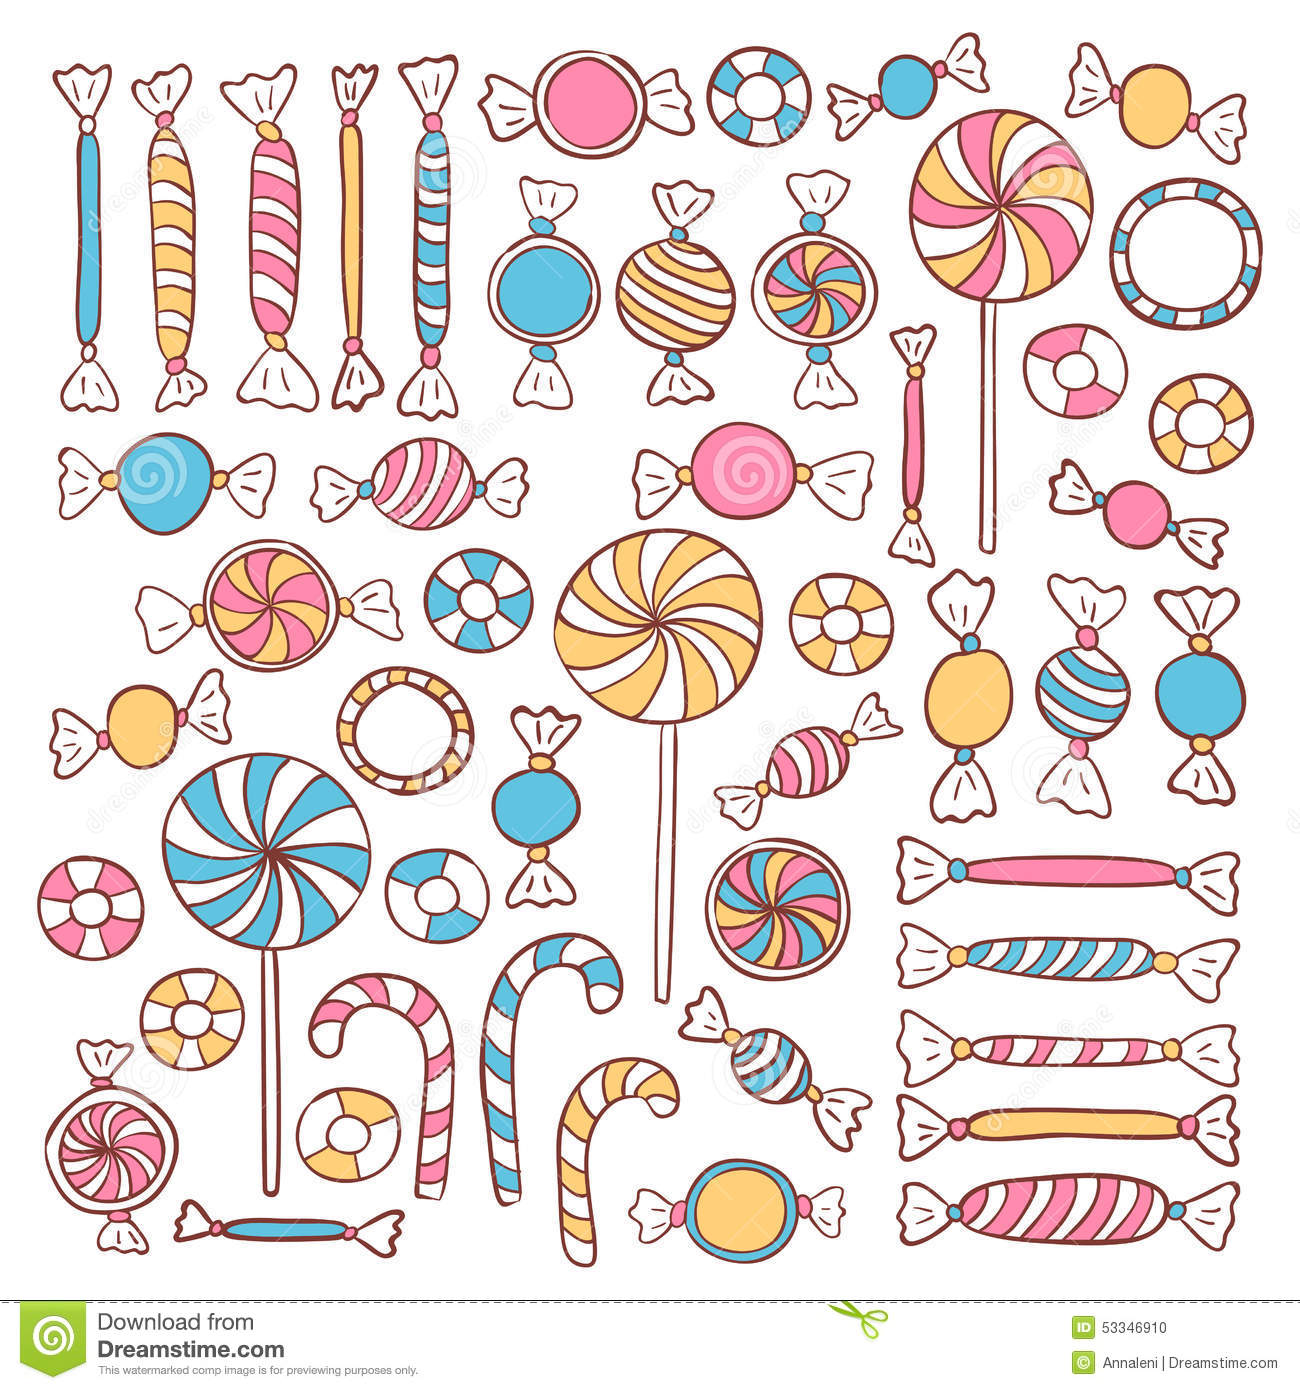 Doodle Candies Sweets Hand Drawn Objects Set Stock Vector